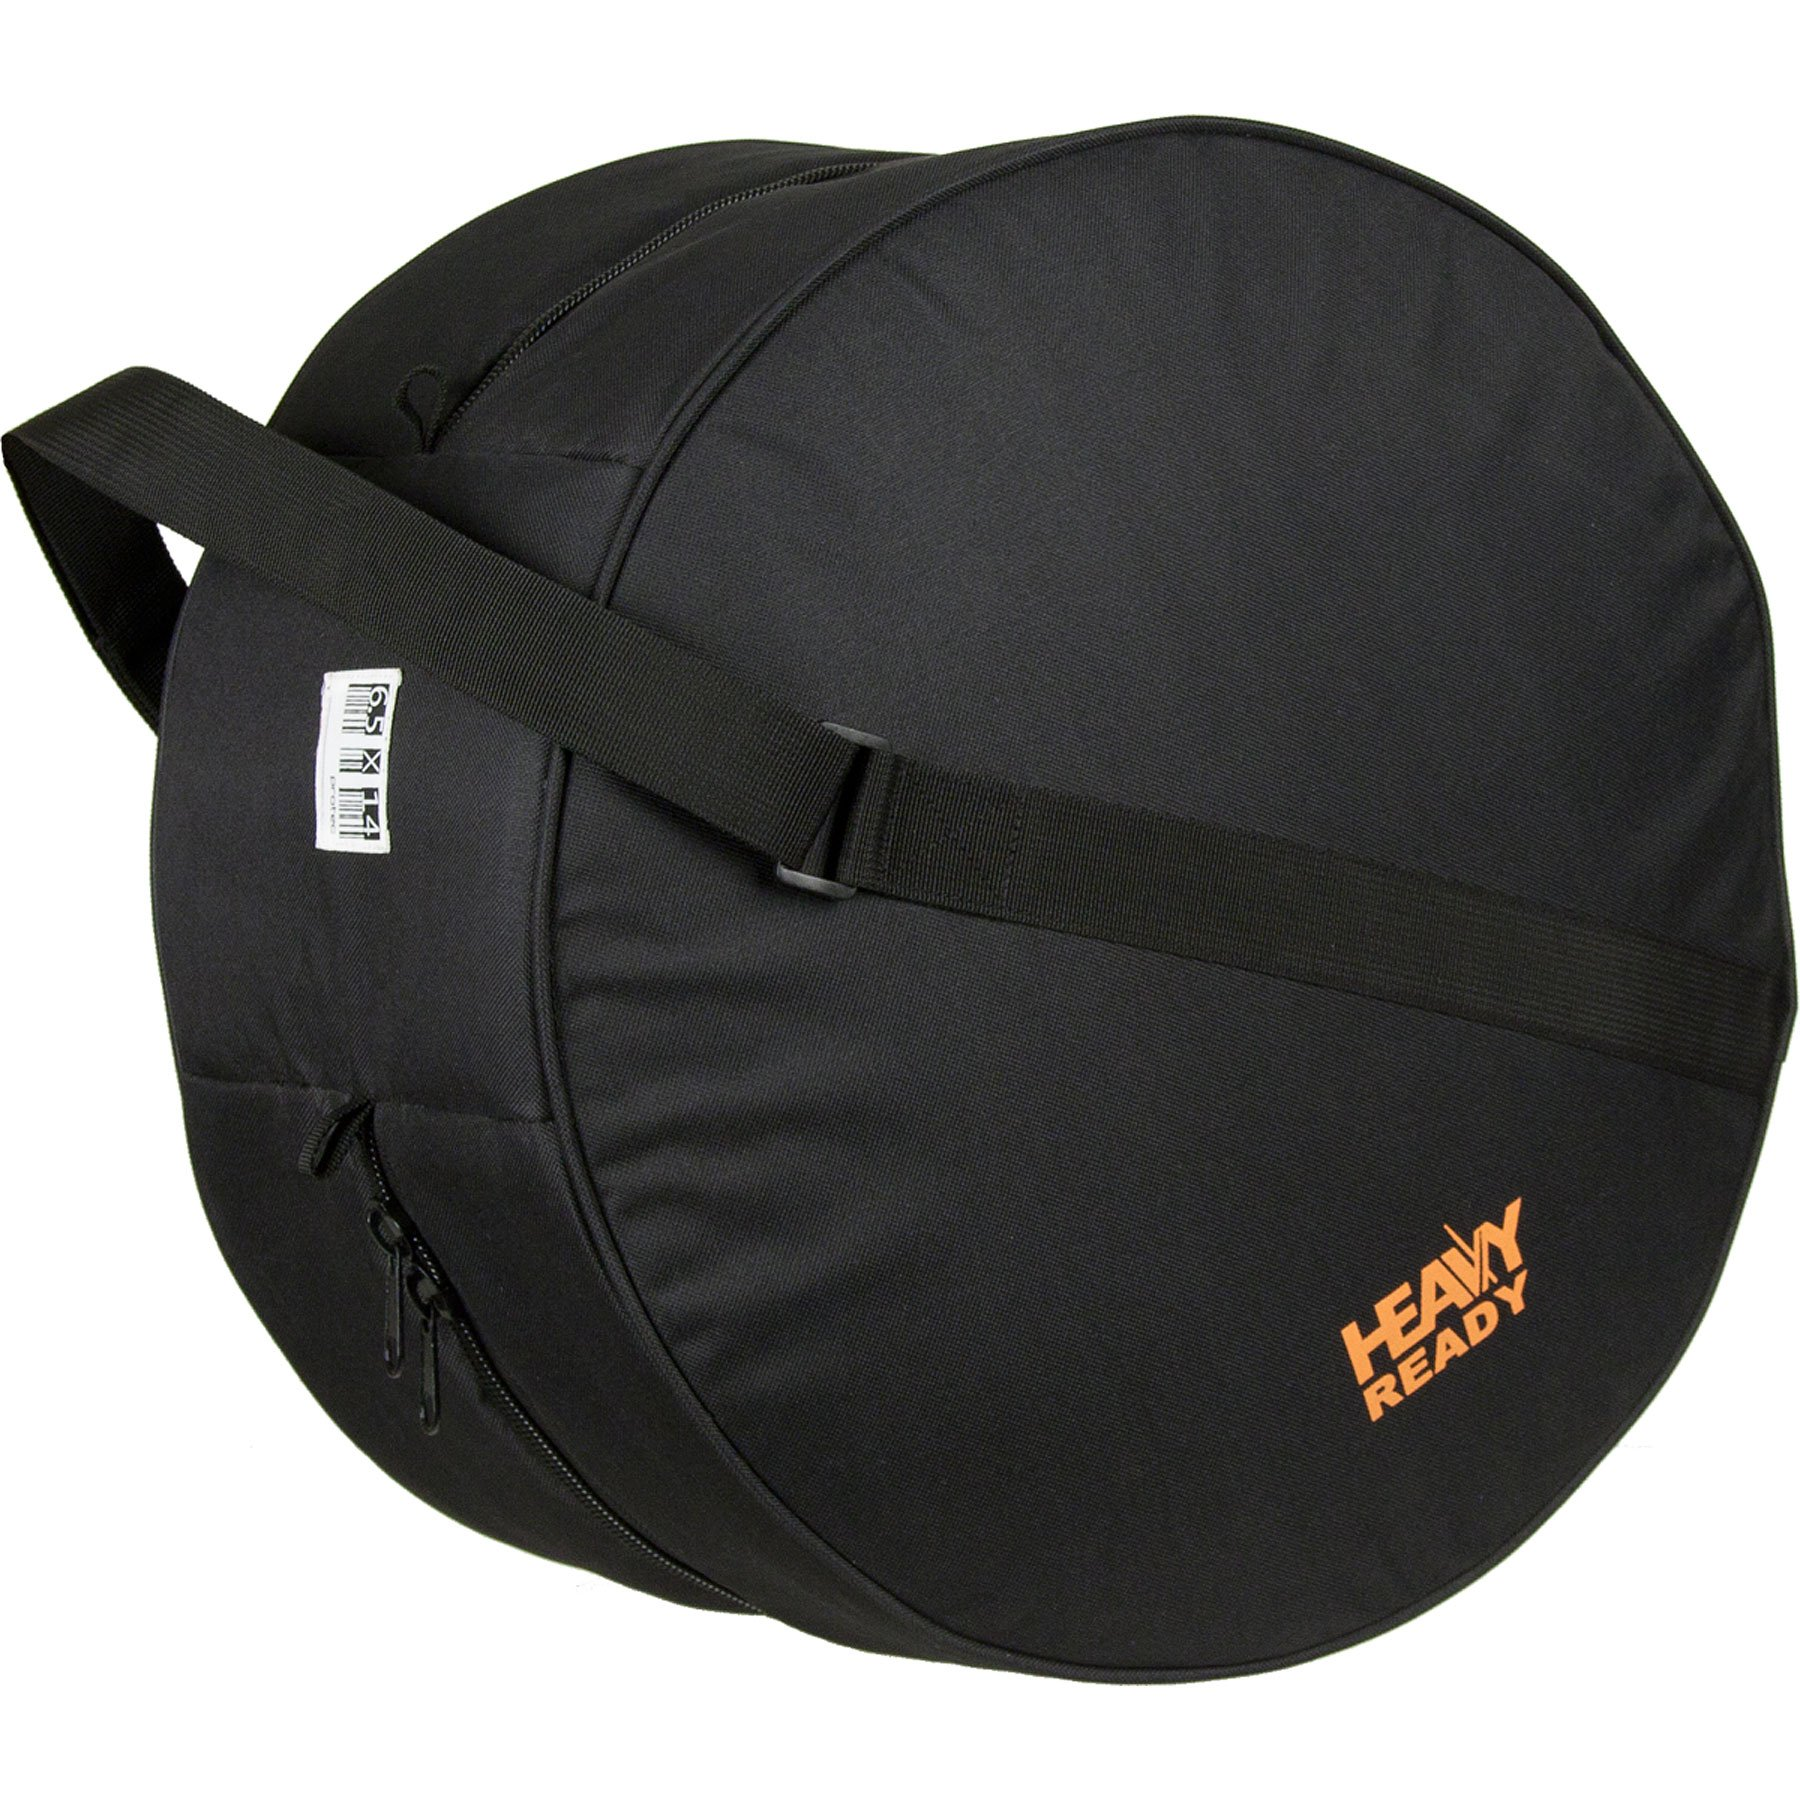 """Heavy Ready 6.5 x 14"""" (Height x Diameter) Padded Snare Bag by Protec, Model HR6514"""